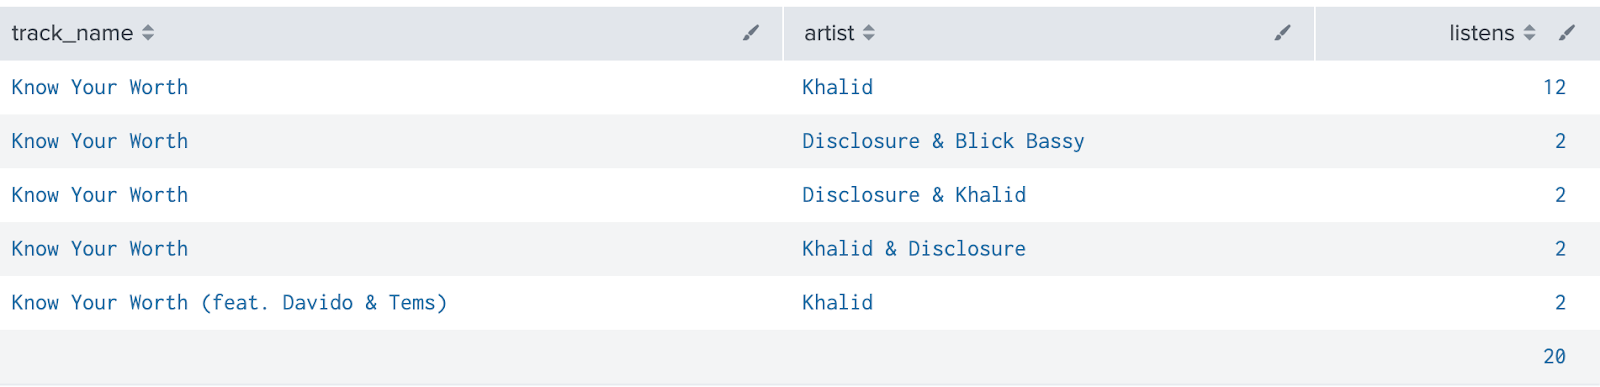 Screenshot showing the track_name Know Your Worth listed 5 times, with different artist permutations each time, Khalid, Disclosure & Khalid, Disclosure & Blick Bassy, Khalid & Disclosure, and Khalid, with total listens of 20 for all permutations.